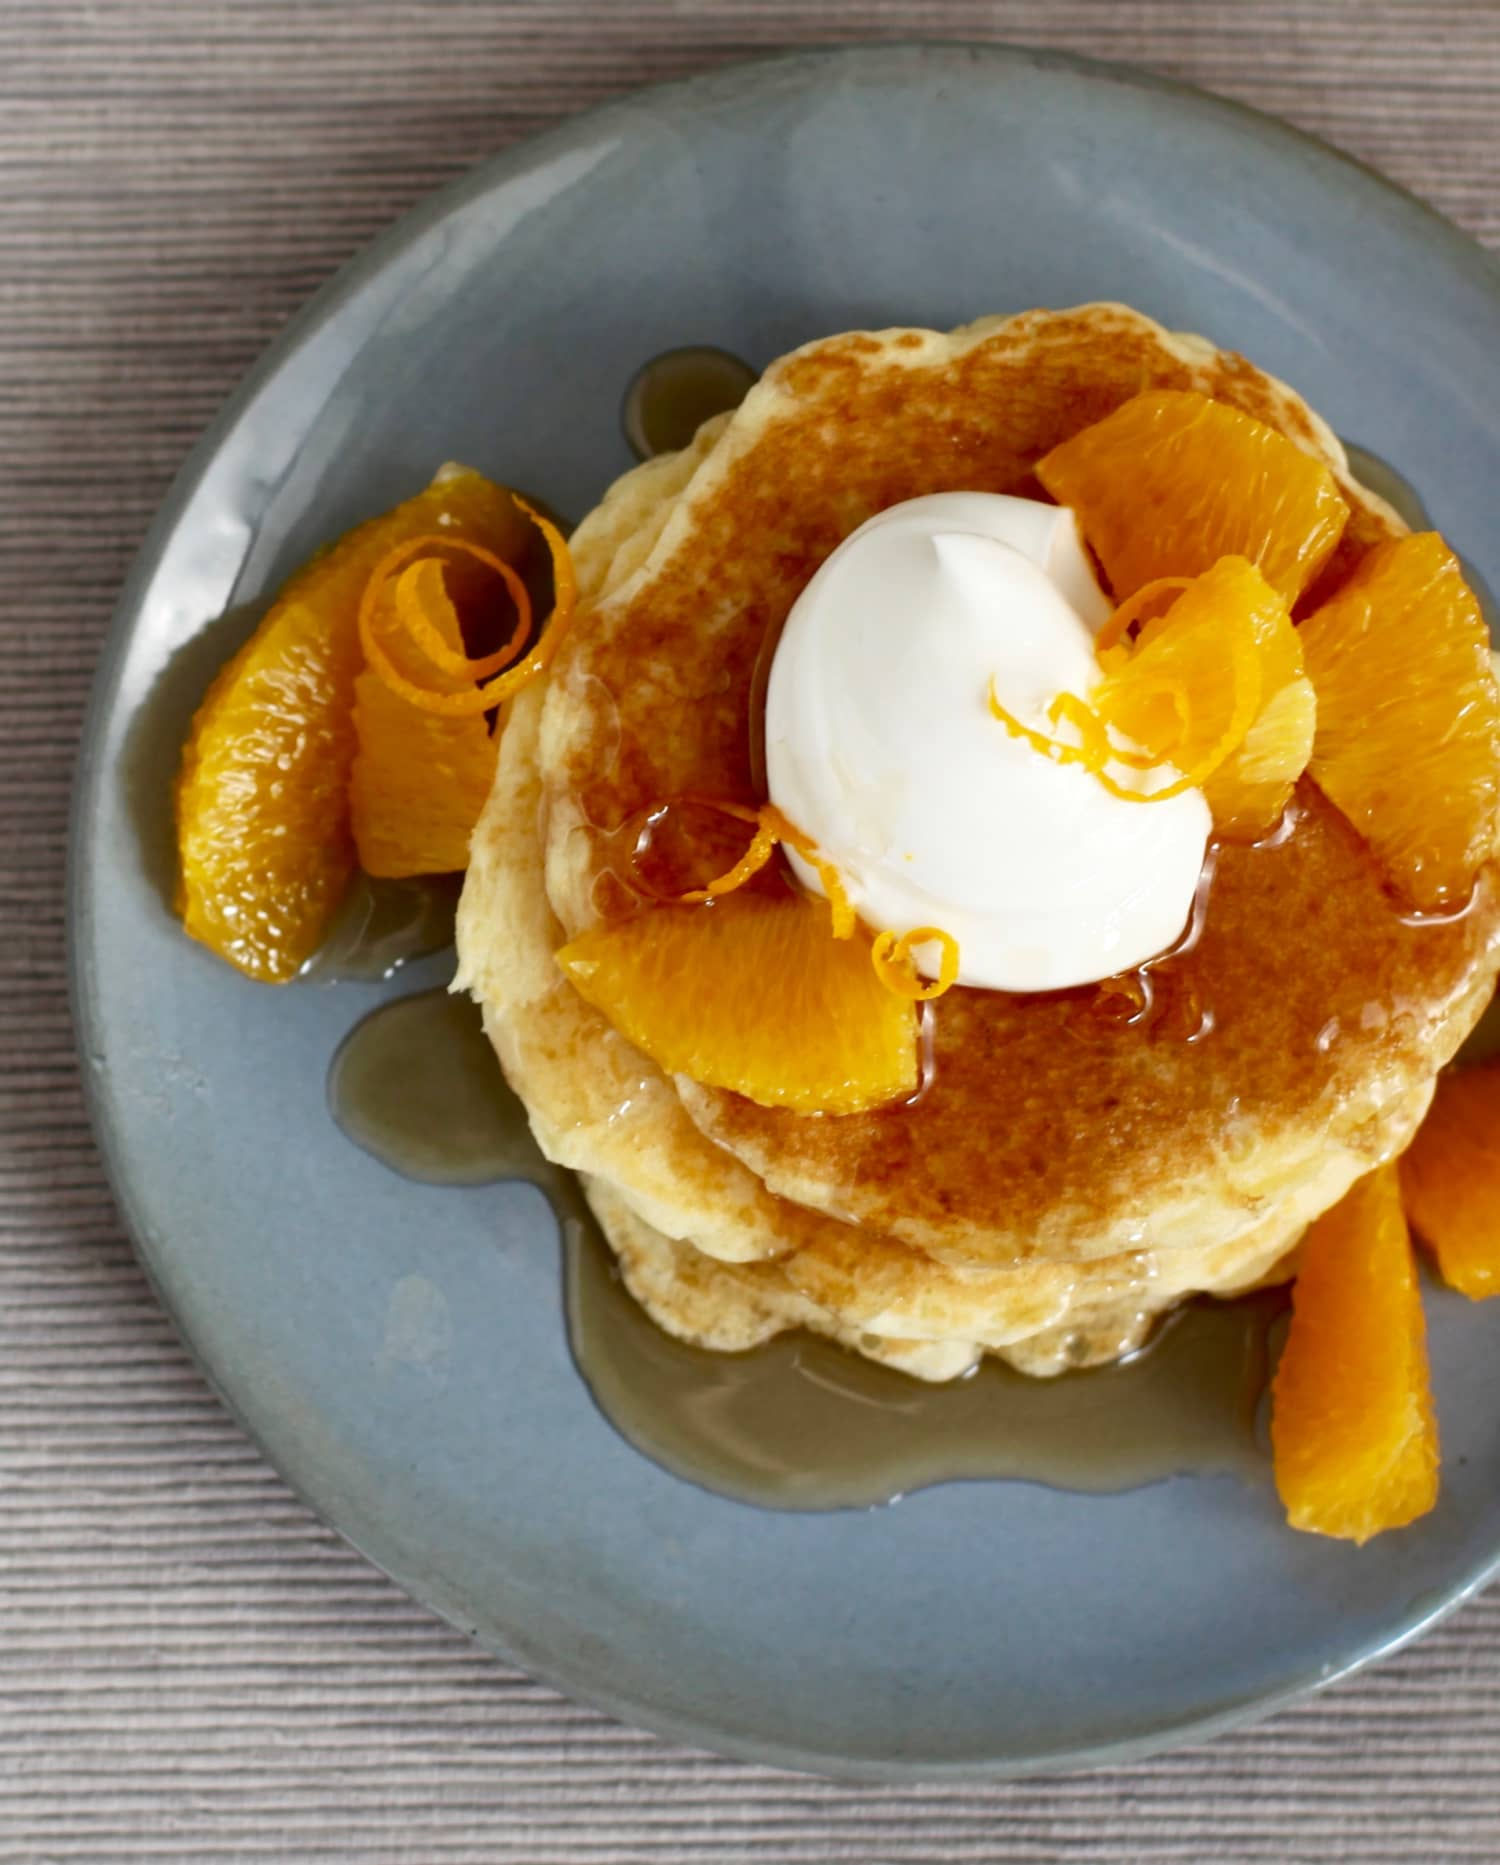 Make Weekend Mornings Delicious with Orange-Ginger Pancakes